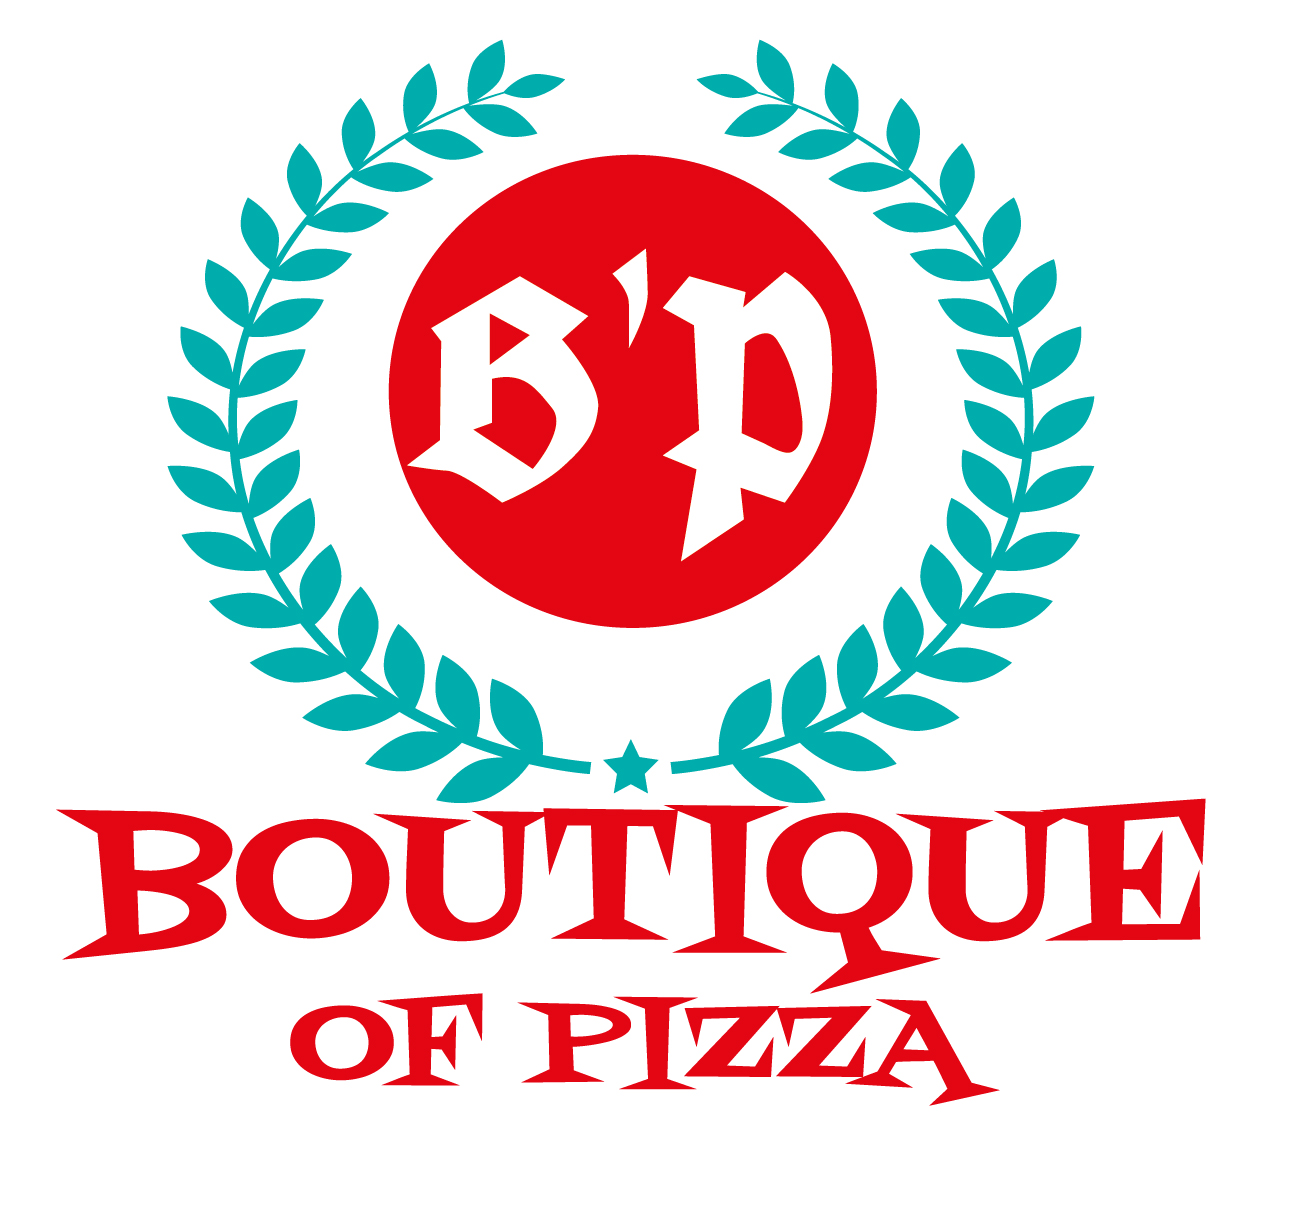 Boutique Of Pizza